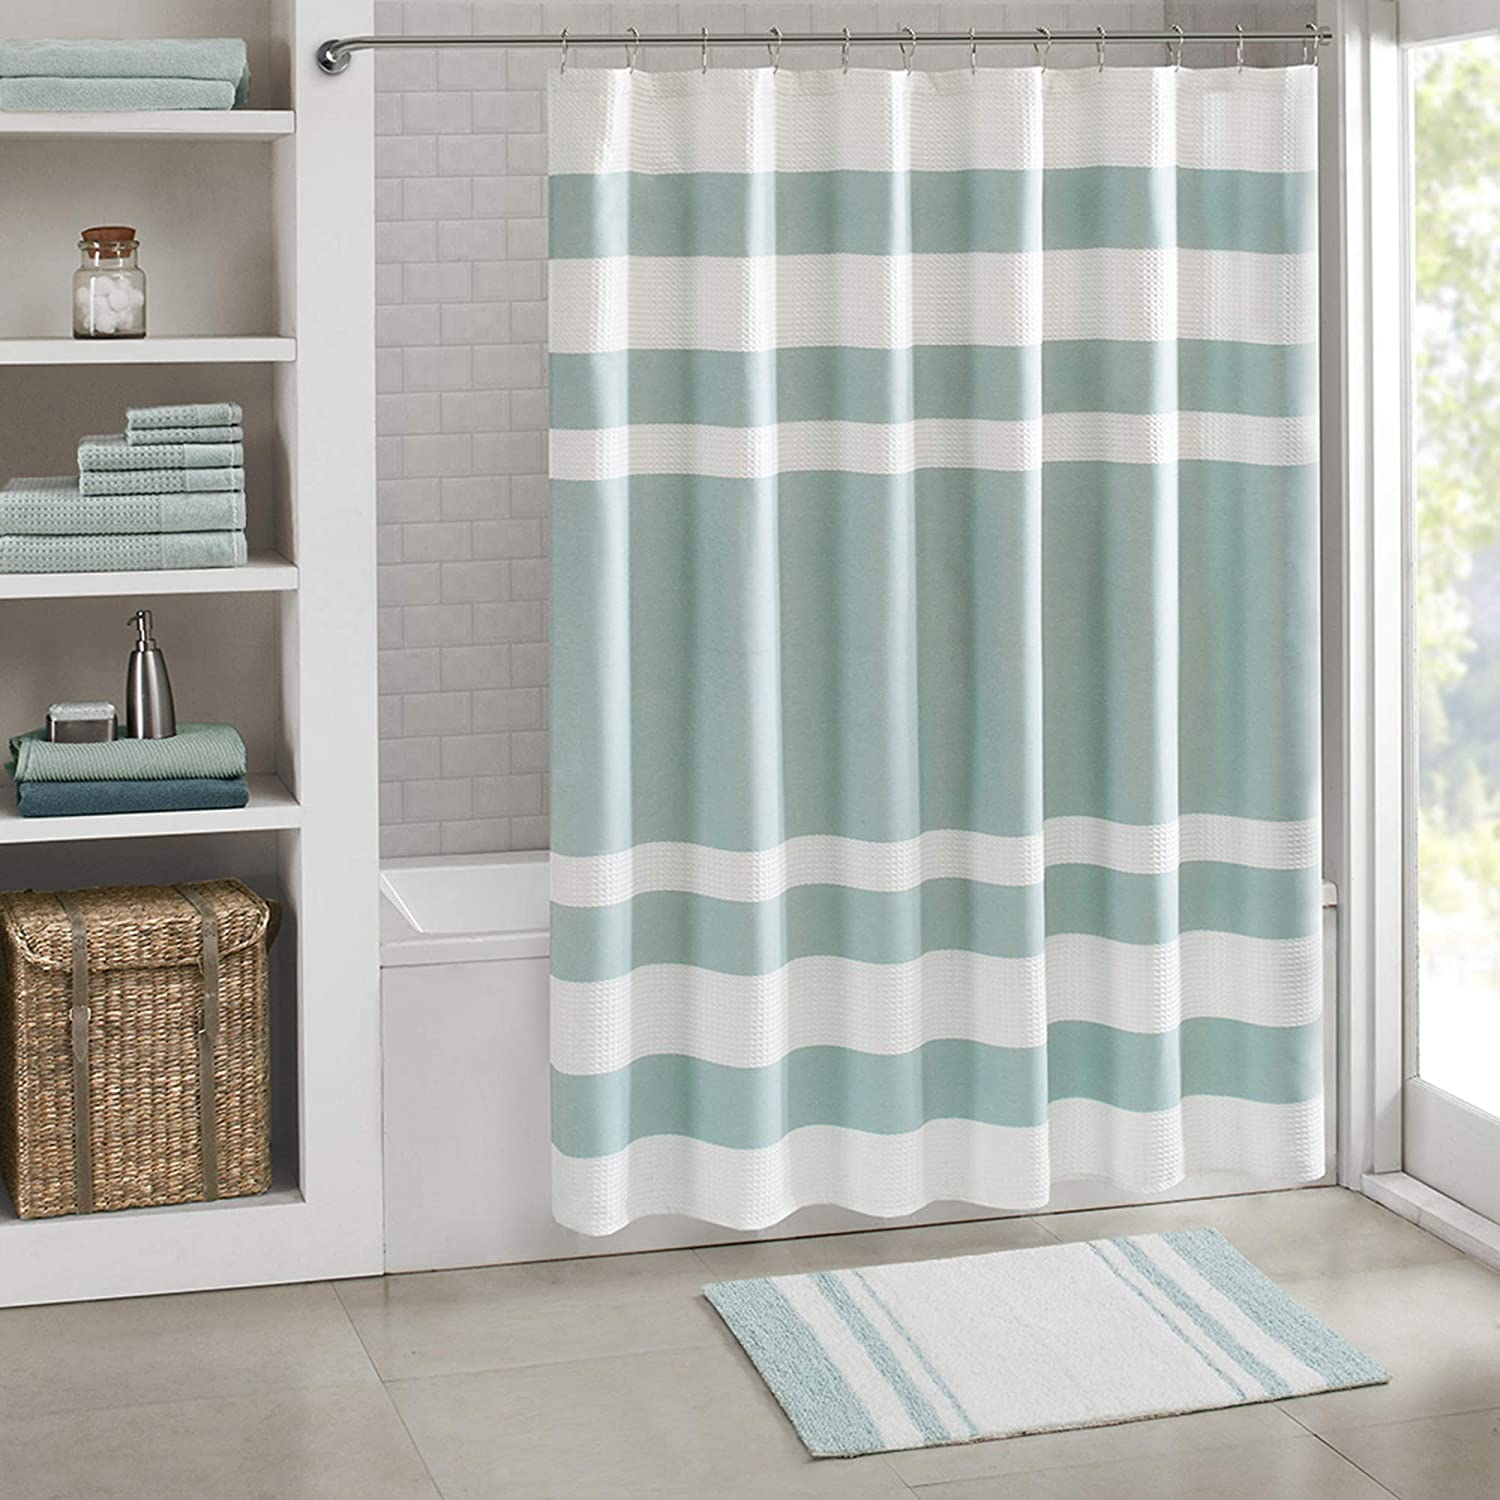 Madison Park Reversible Spa Rug 100%-Cotton Striped Ultra Soft Water Fast Bath Non-Slip Absorbent Quick Dry Mats for Tub, Shower Room, and Bathroom, 20x30, Aqua